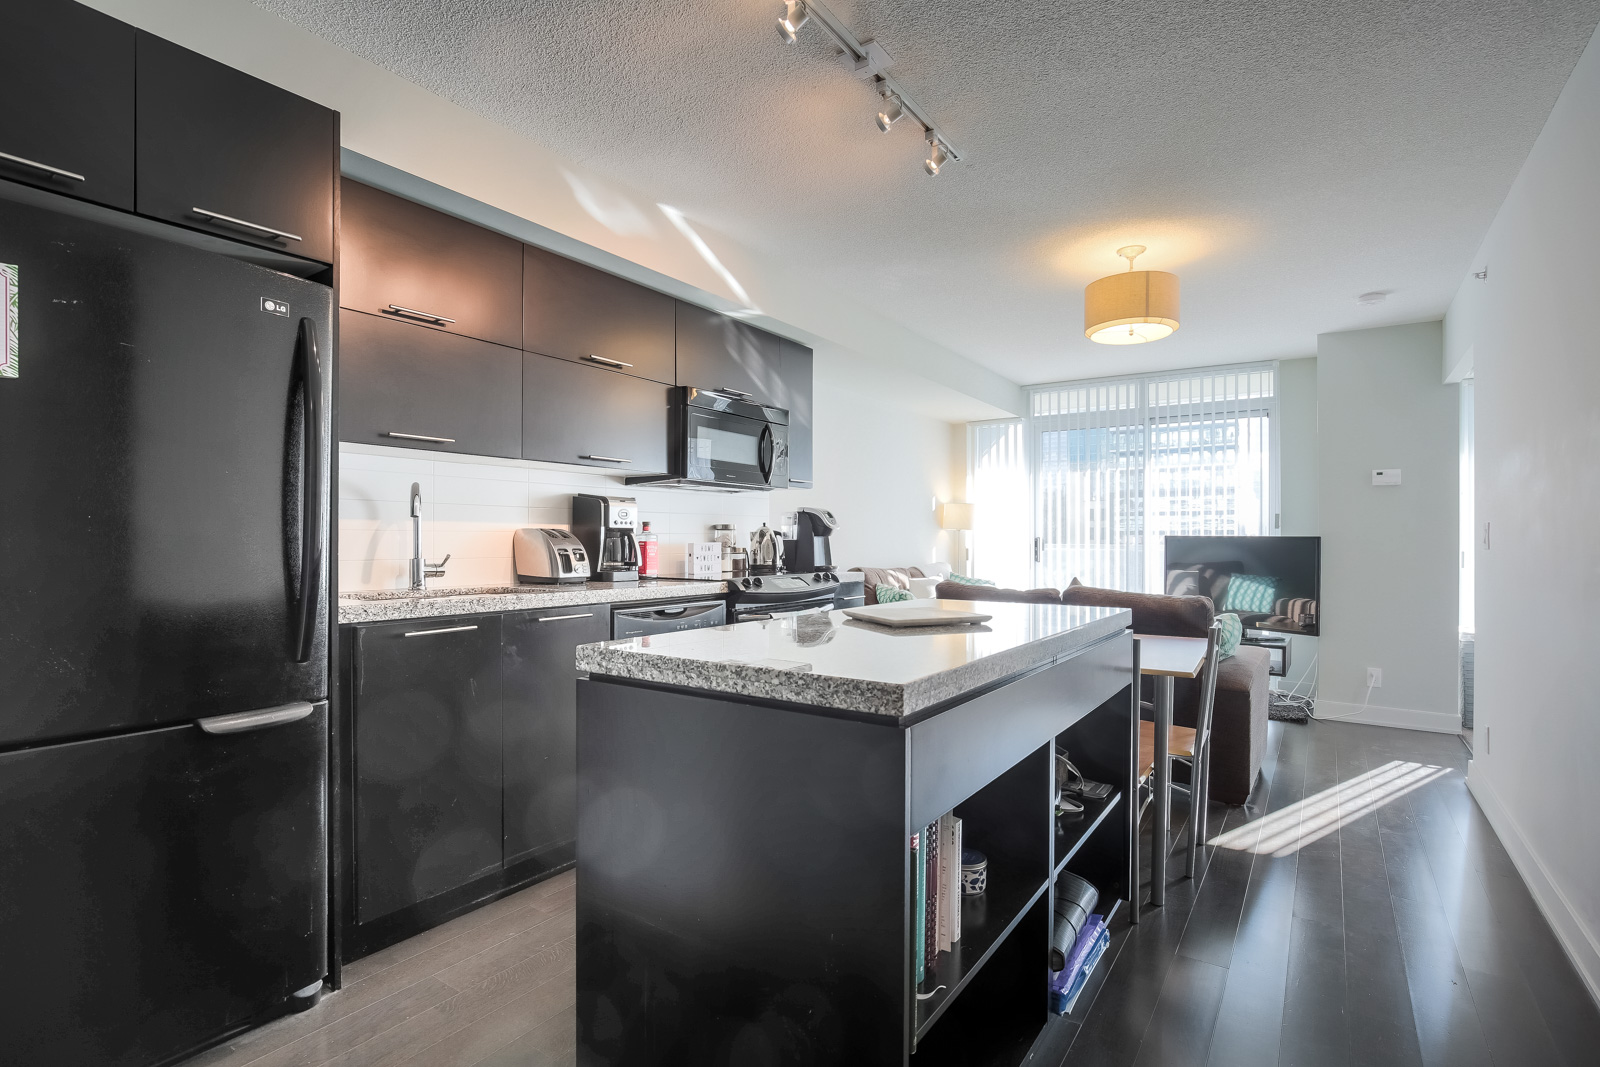 View of condo interior showing modern, open-concept design, hardwood floors & stainless steel appliances